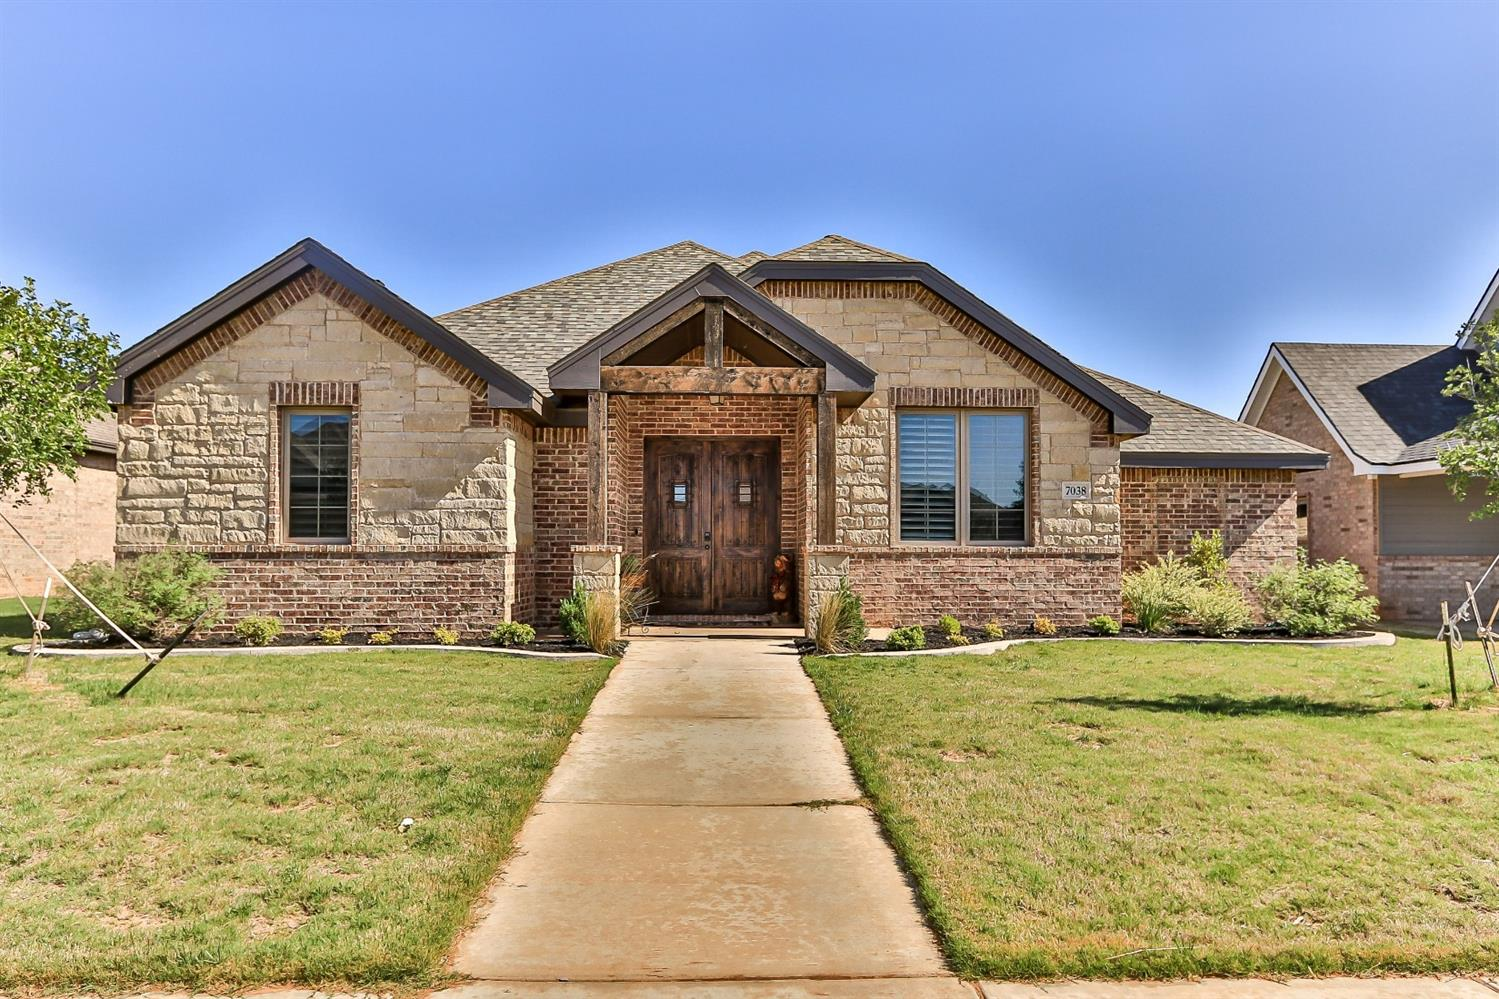 The beautiful 4/3.5/2 in Frenship ISD you have been waiting to own. Located on cul-de-sac at The Ridge in Frenship ISD. Kitchen features beautiful cabinetry, Whirlpool Gold double ovens (one is convection), gas range, and a beautiful quartz island. An open-concept living allows vision to an inviting brick FP in the living room. Notice the gorgeous light fixtures in home. Outside there is a perfectly placed shaded patio with tv & mount. Features include: Alexa capable to turn on under cabinet lighting & laundry room. The desk in living room is easily moveable and has been the perfect spot for kids doing homework. Master is isolated with large closet, stunning shower, and separate vanity areas. Bedrooms 2 & 3 share a Jack and Jill bathroom. Bedroom 4 is isolated from all others and adjacent to a full size bathroom. Near the laundry room is mudroom, pantry, and a 1/2 bath. NEST thermostat, doorbell, TV & mount in oversized garage, bike racks, wall exercise convey. Sod allowance of $1,000.